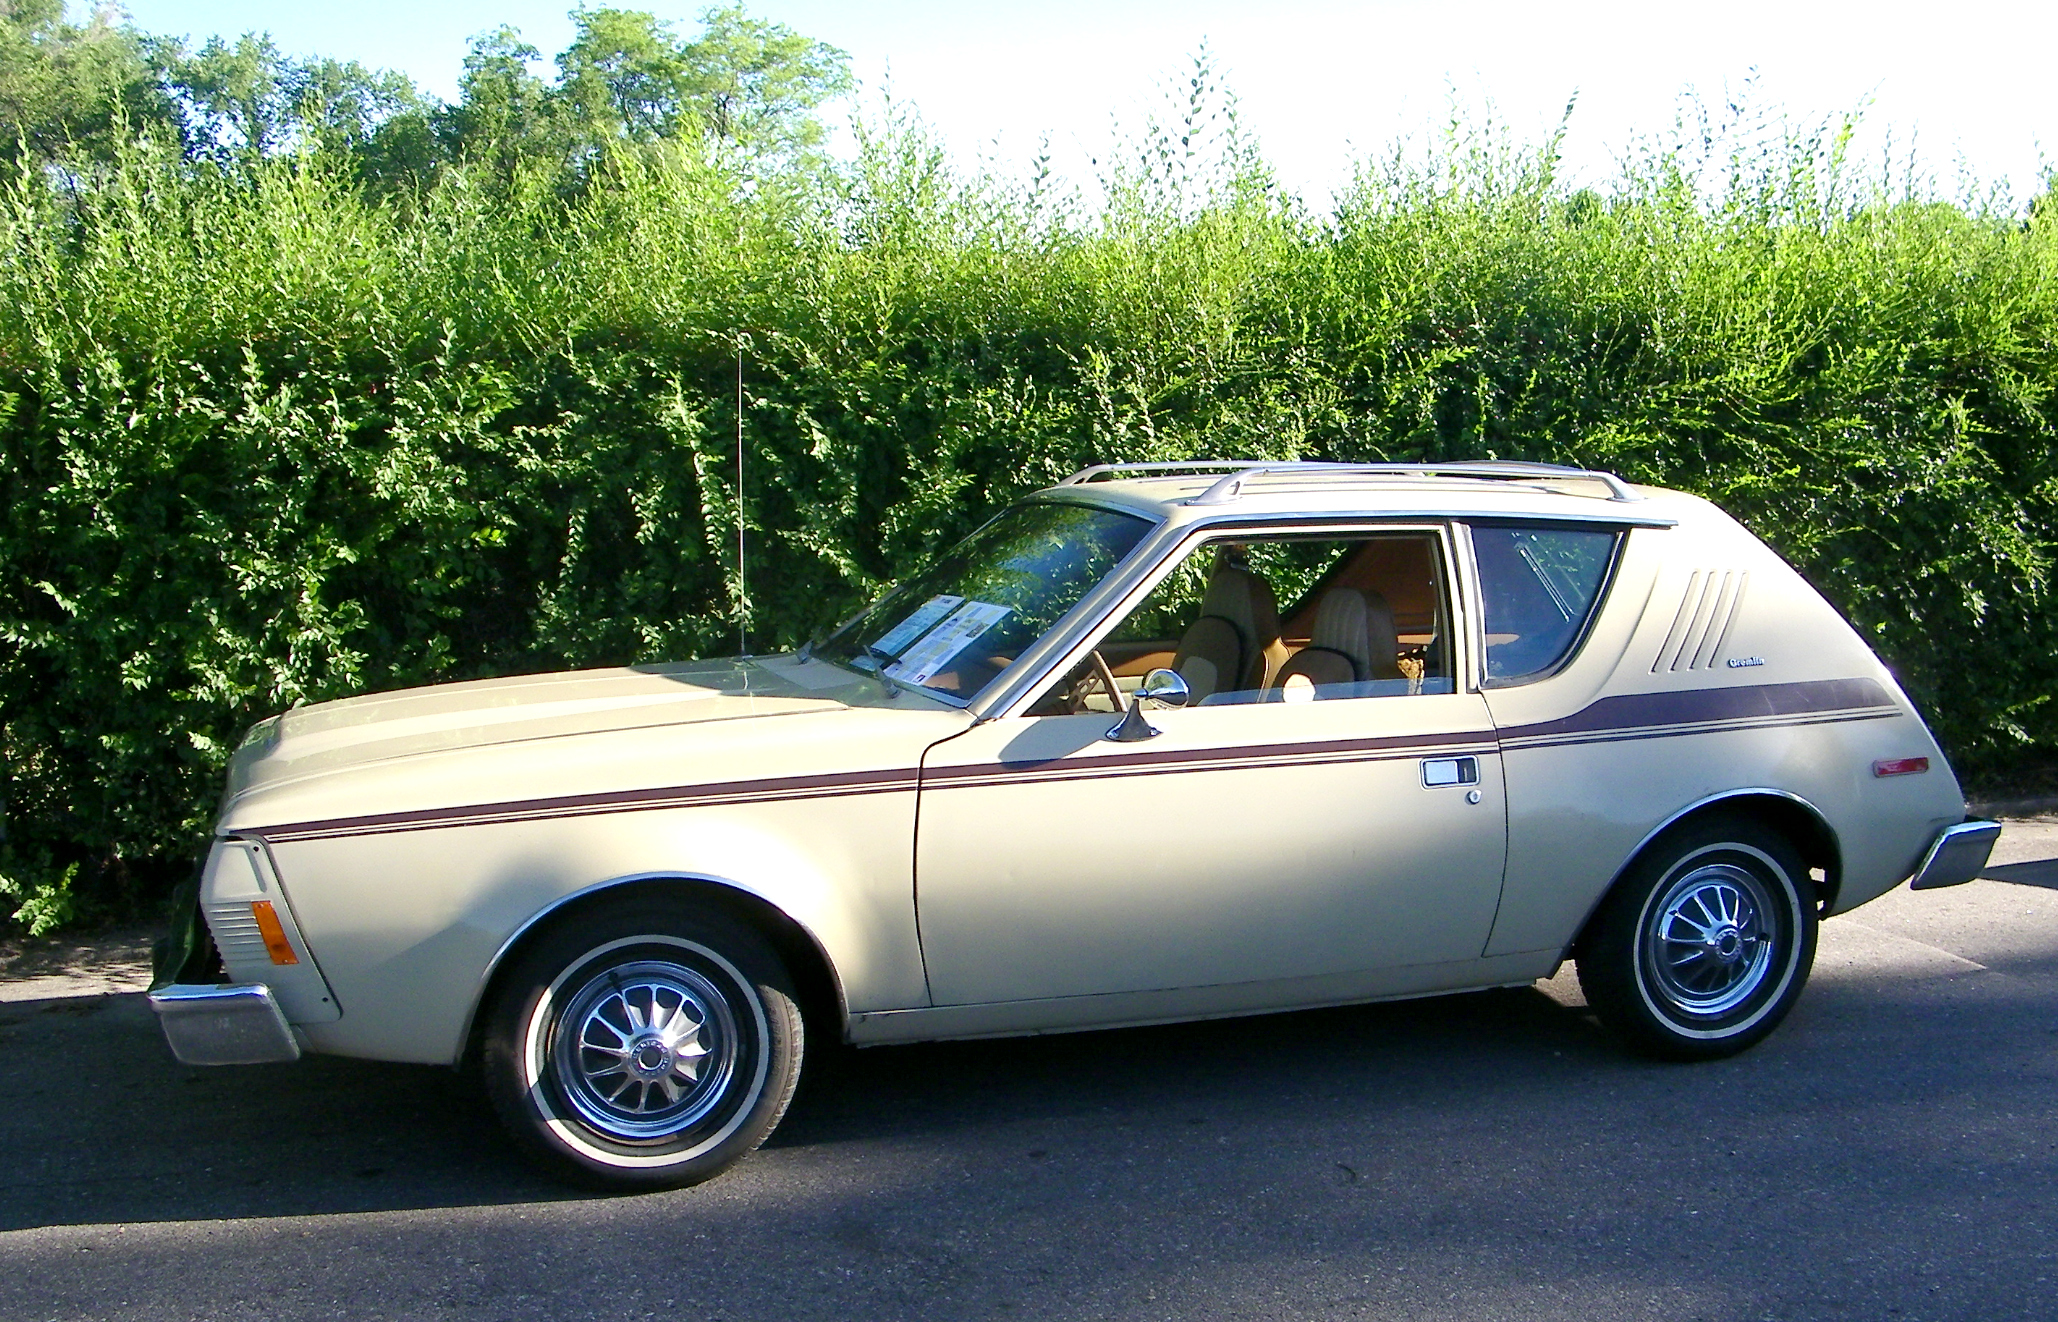 1974 Amc Gremlin Images Pictures And Videos